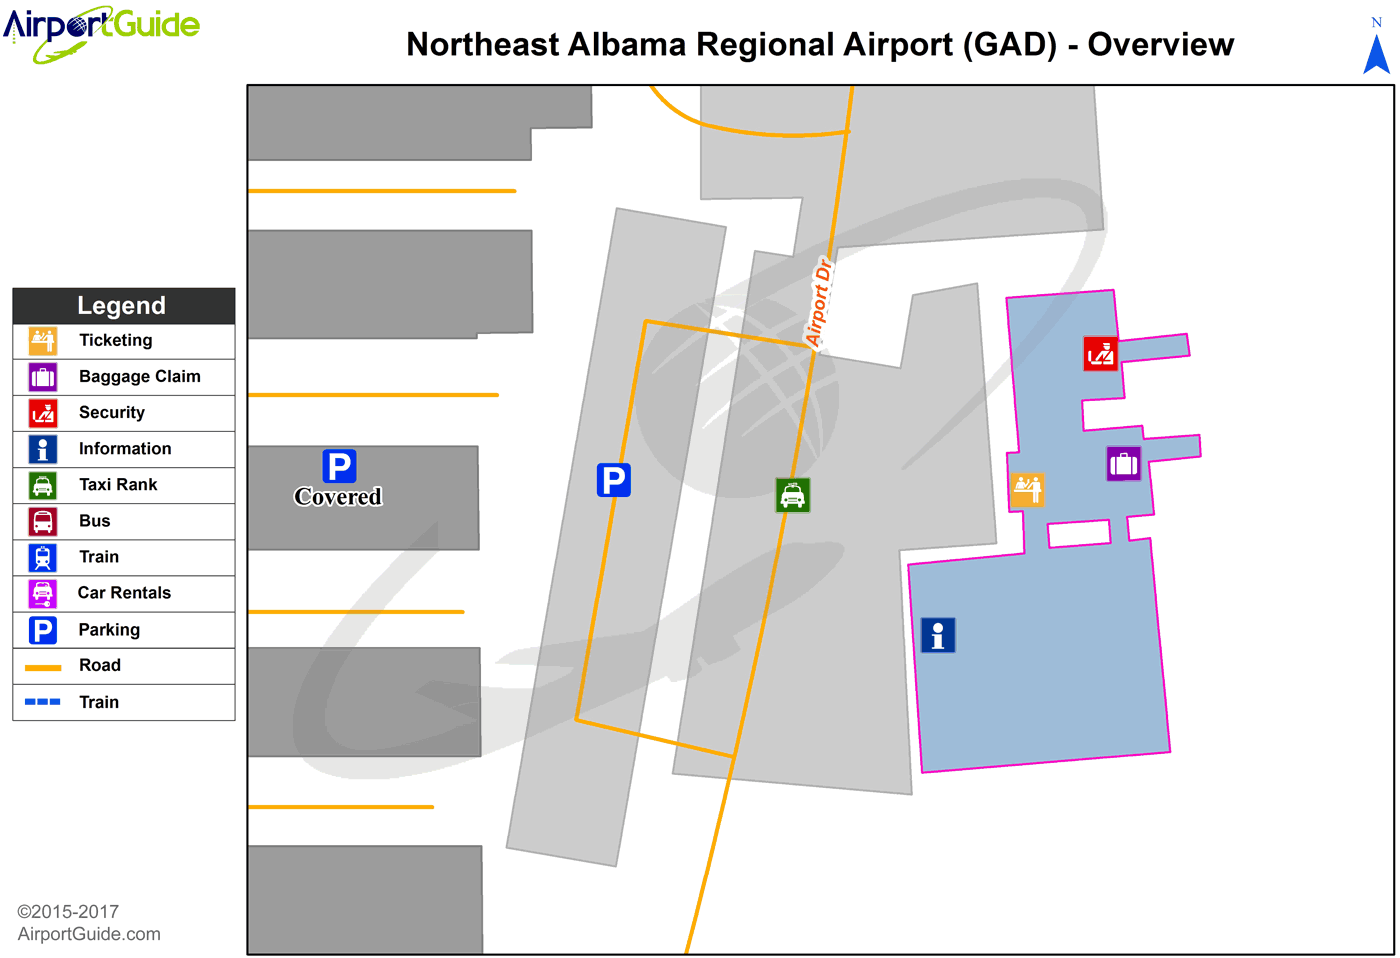 Gadsden - Northeast Alabama Regional (GAD) Airport Terminal Map - Overview